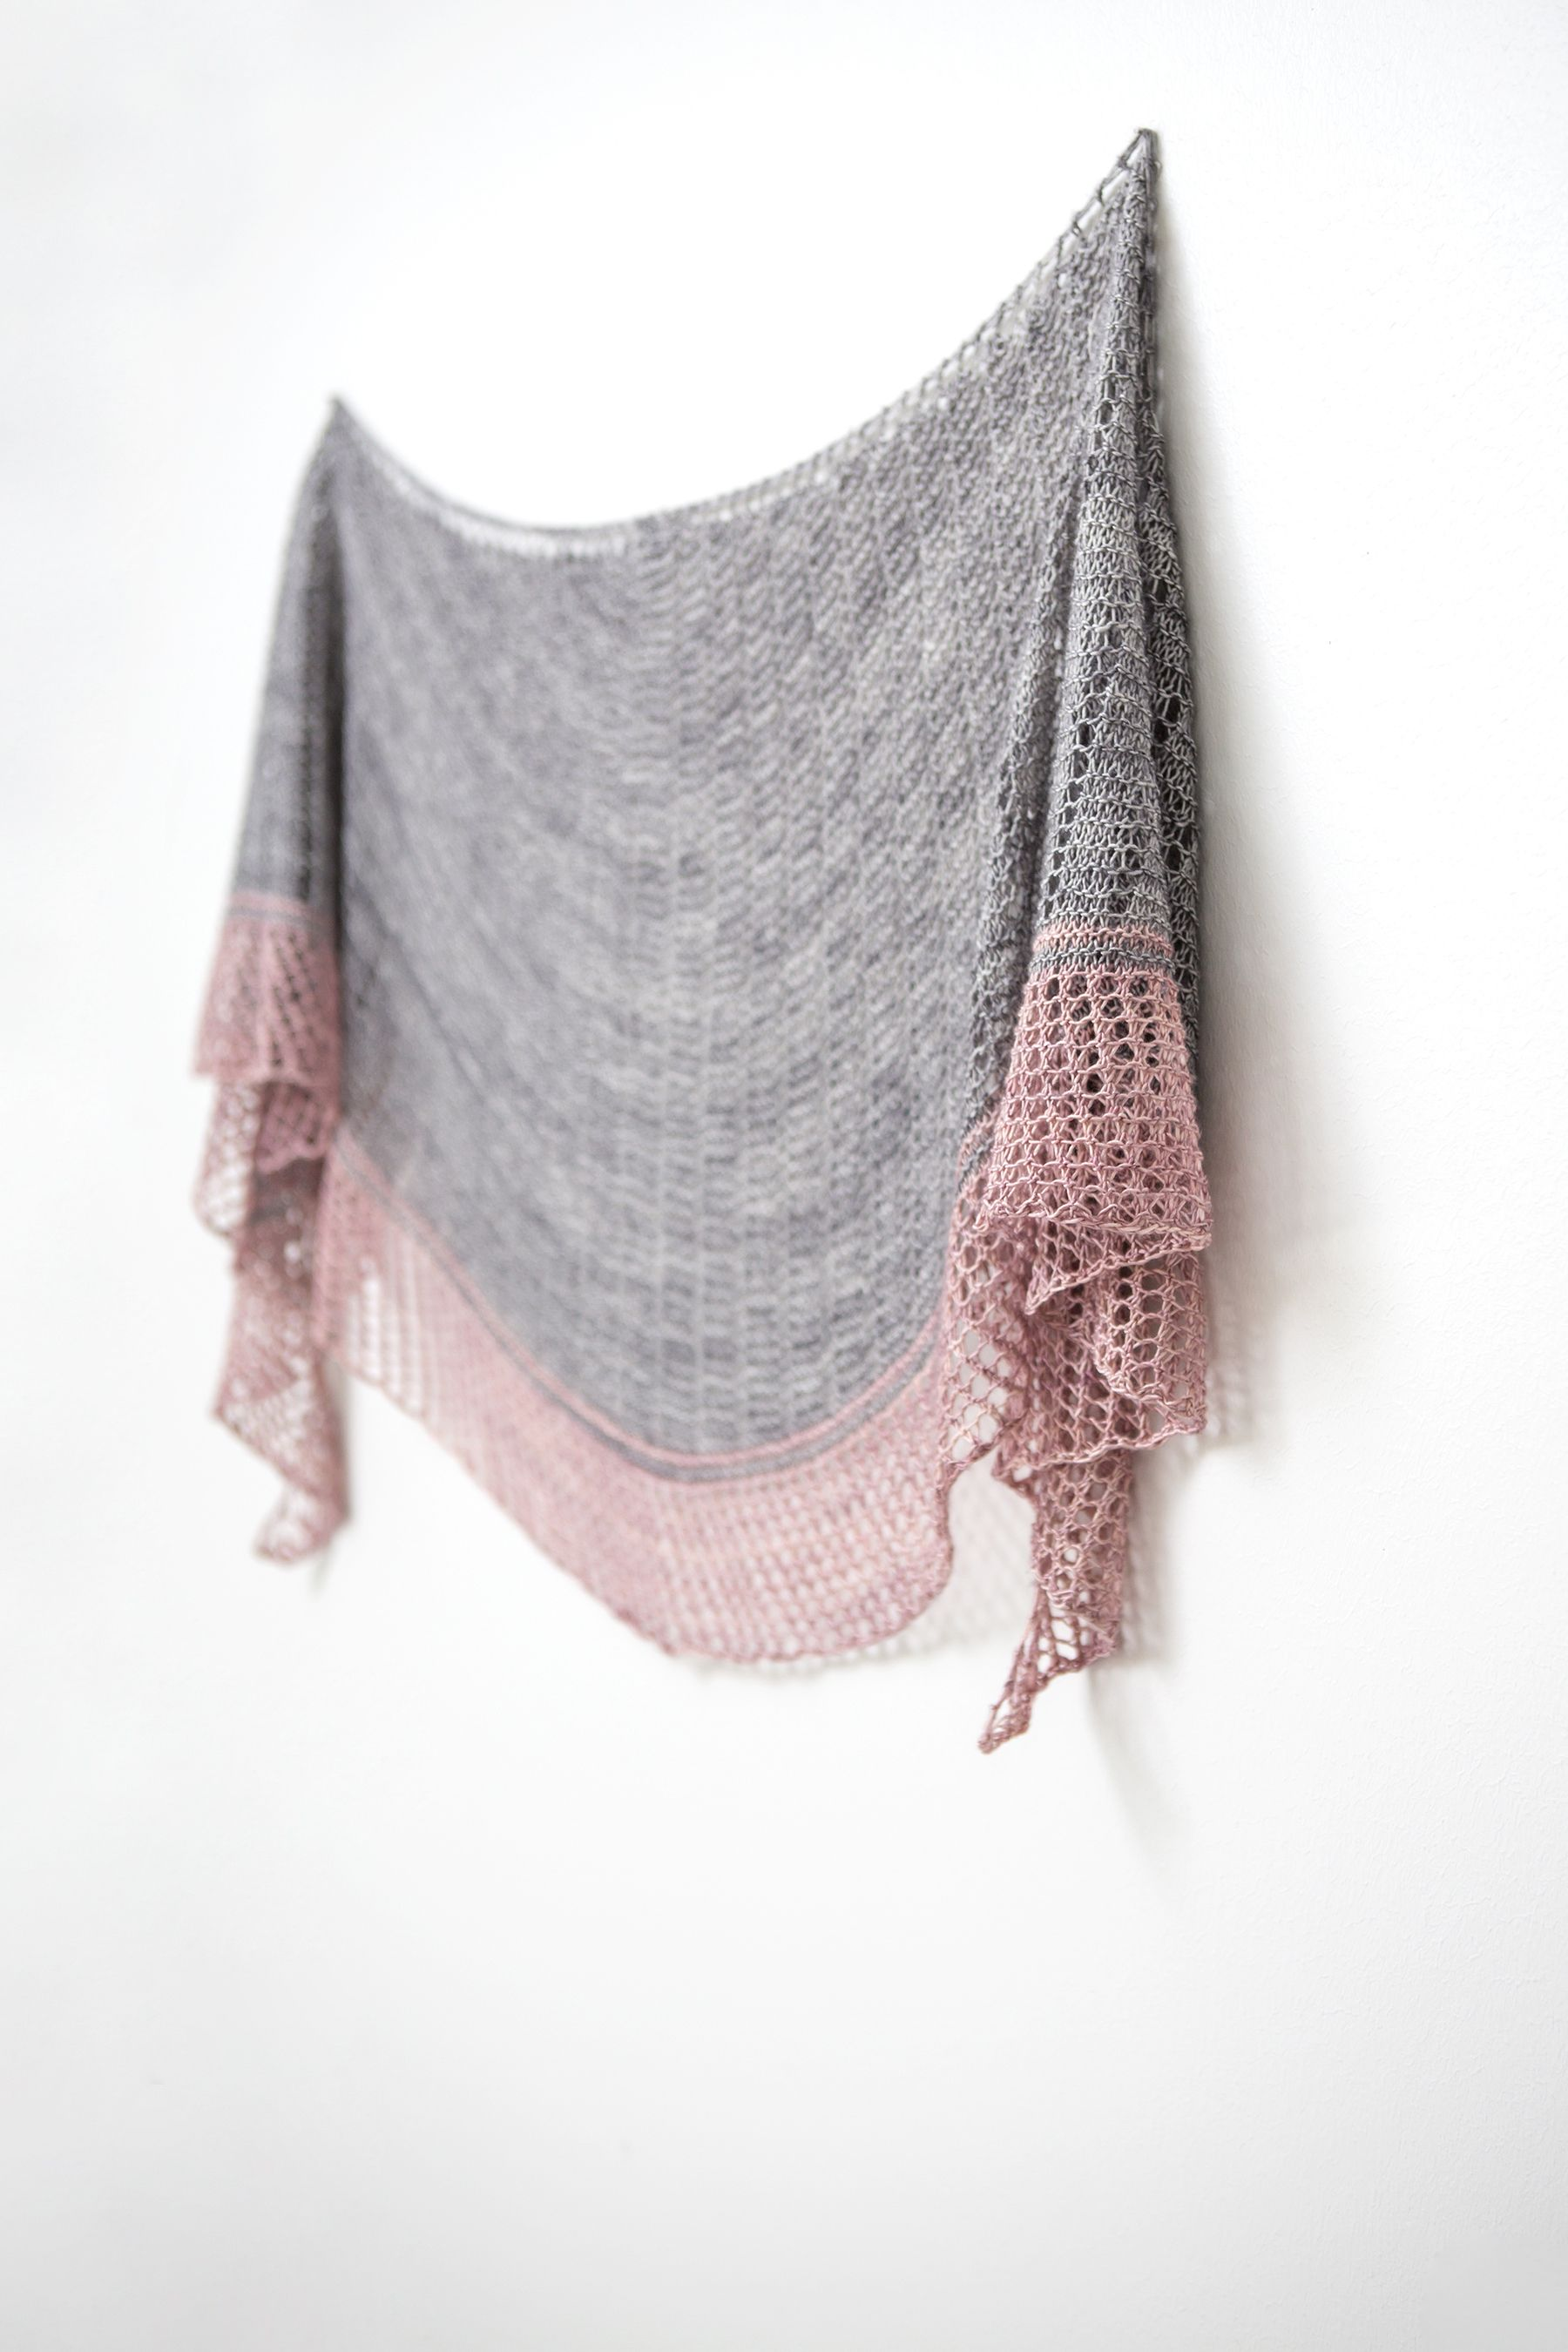 Lighthouse pattern by Janina Kallio | Knit patterns, Shawl and Ravelry